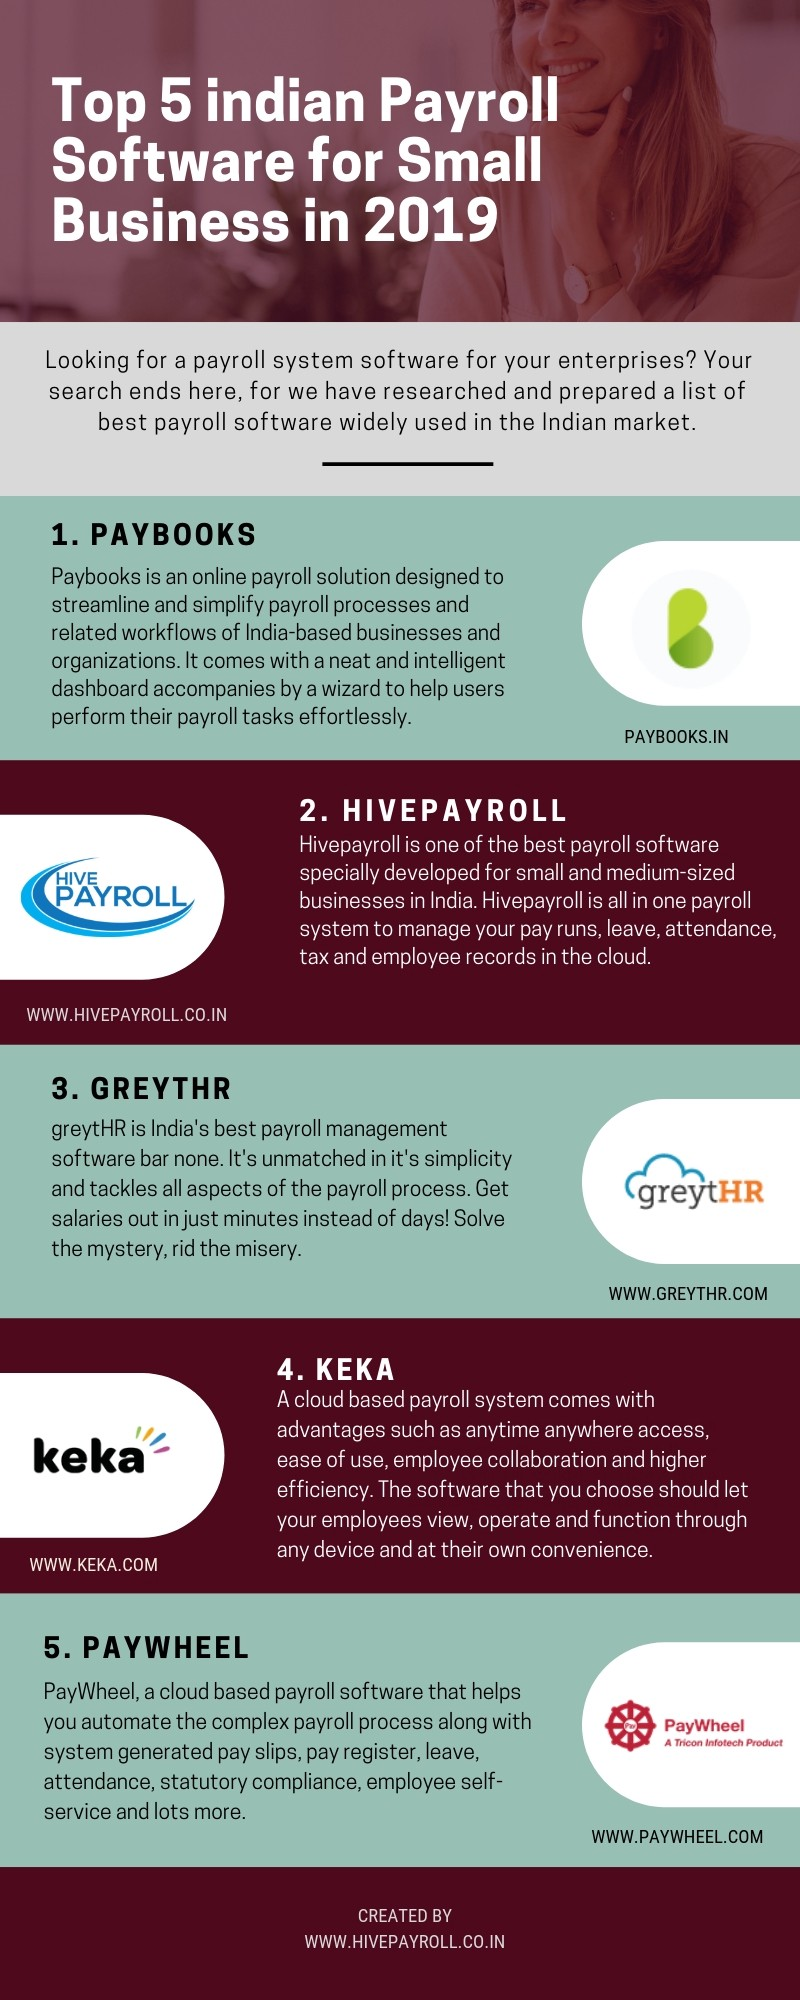 What To Look Out For In Payroll Software For Sme Business : payroll, software, business, Infographic, Indian, Payroll, Software, Small, Business, Hivepayroll, Medium